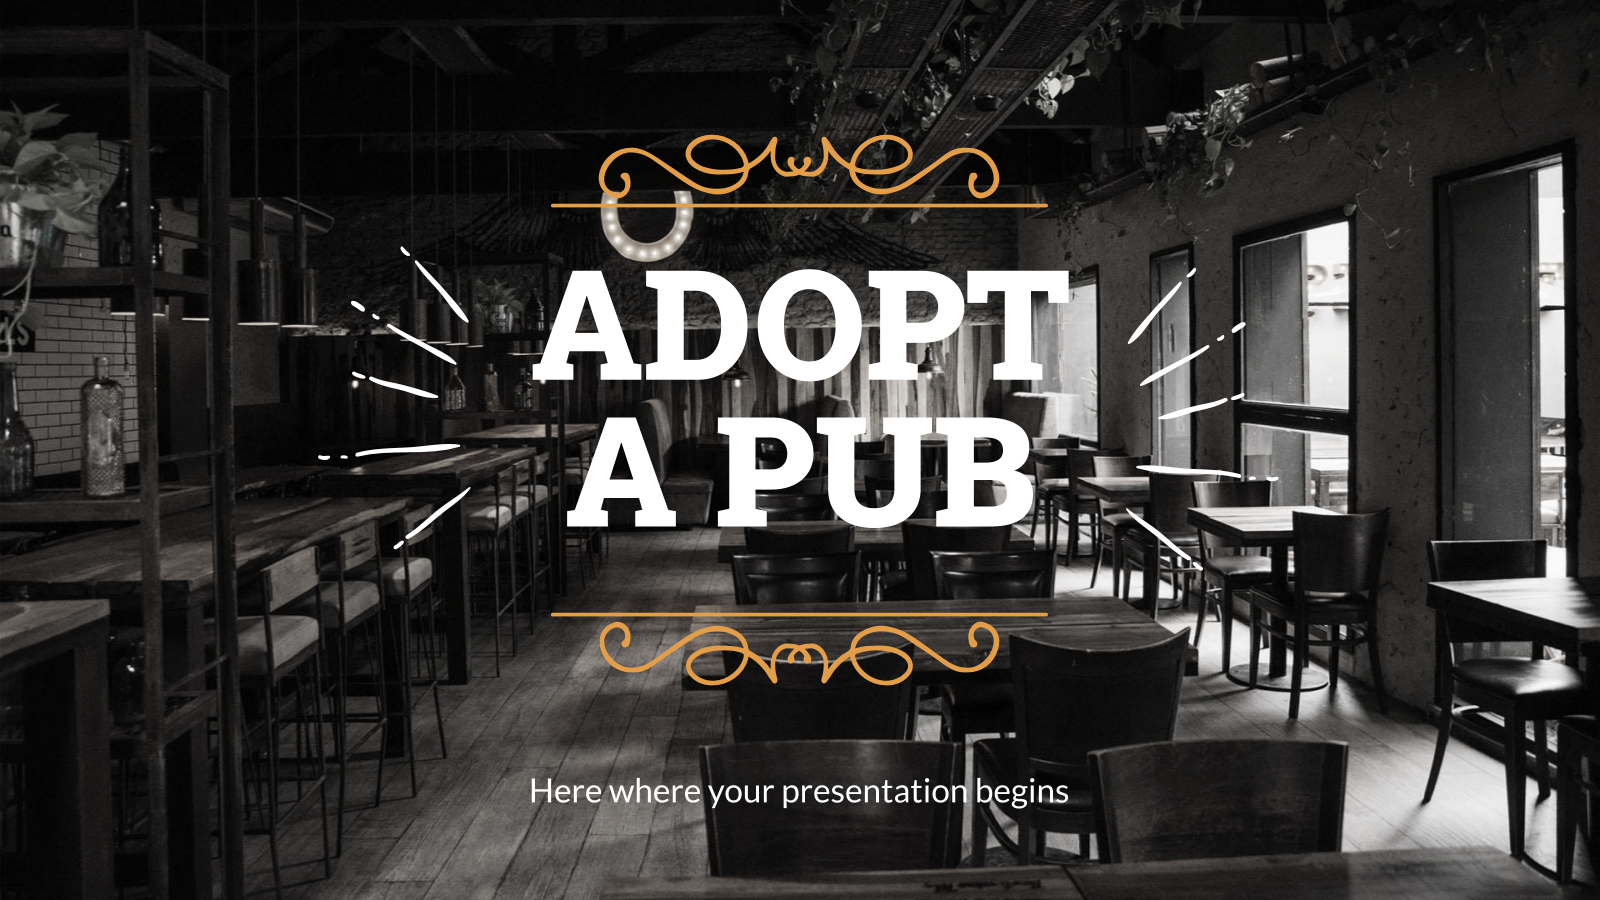 Adopt a pub pitch deck presentation template